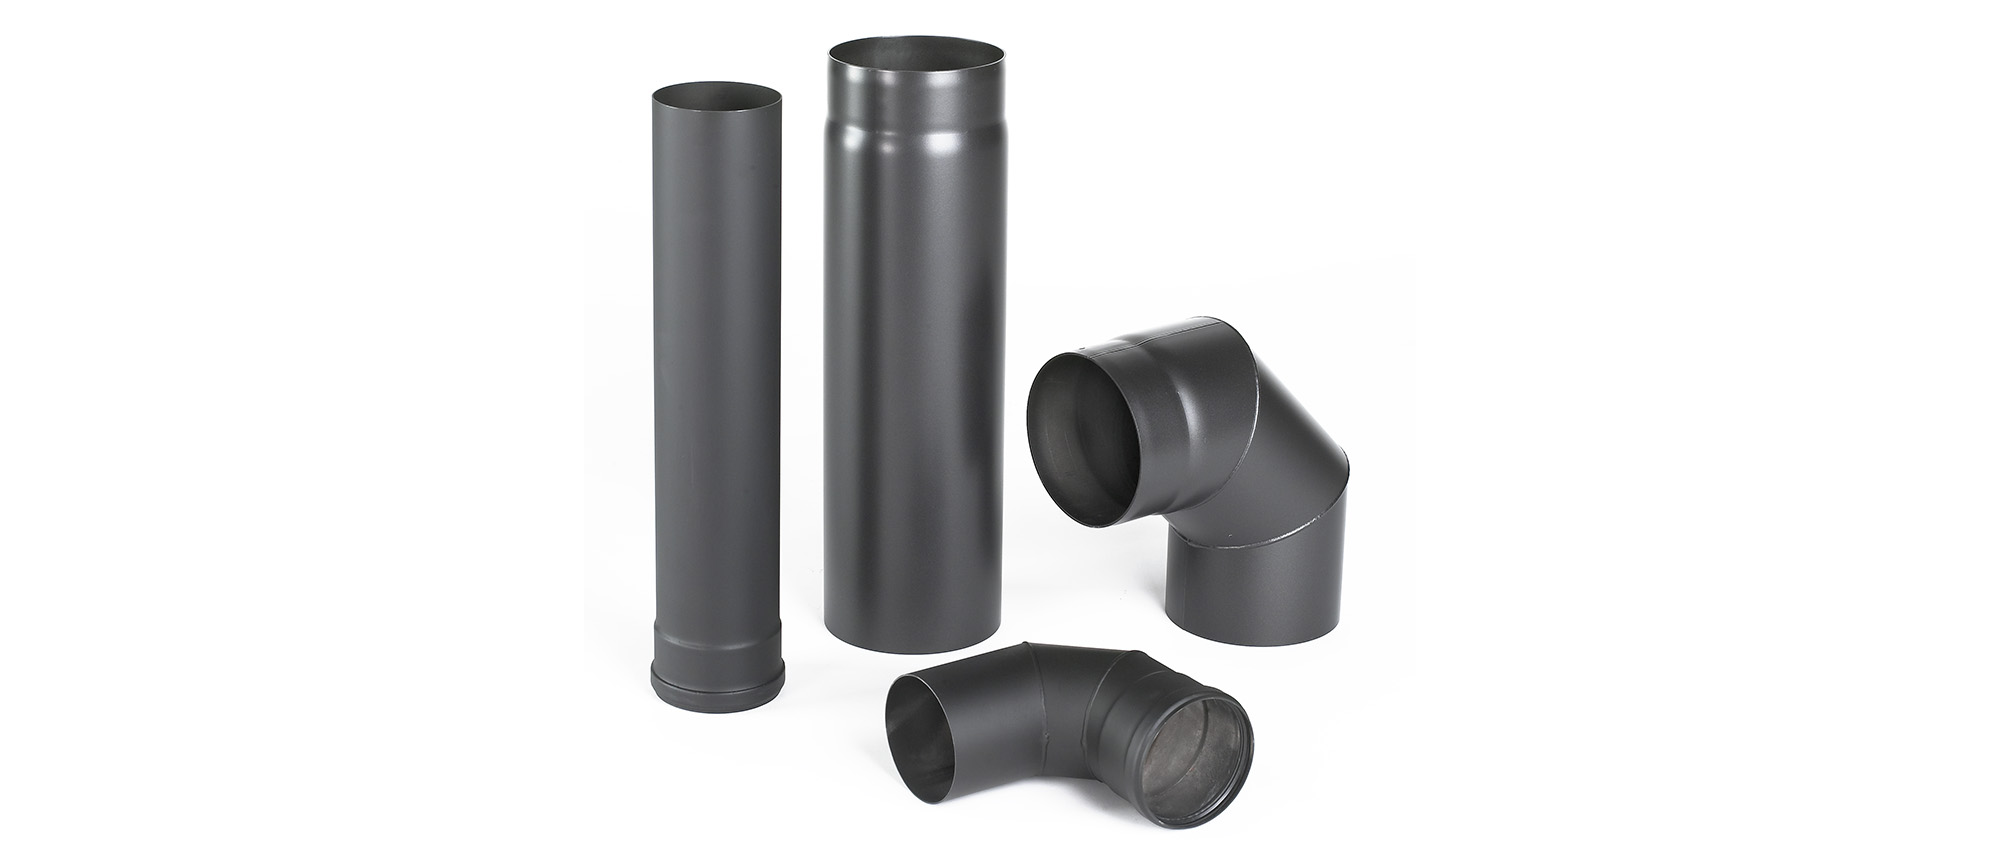 Flue pipe products for wood and pellet stoves